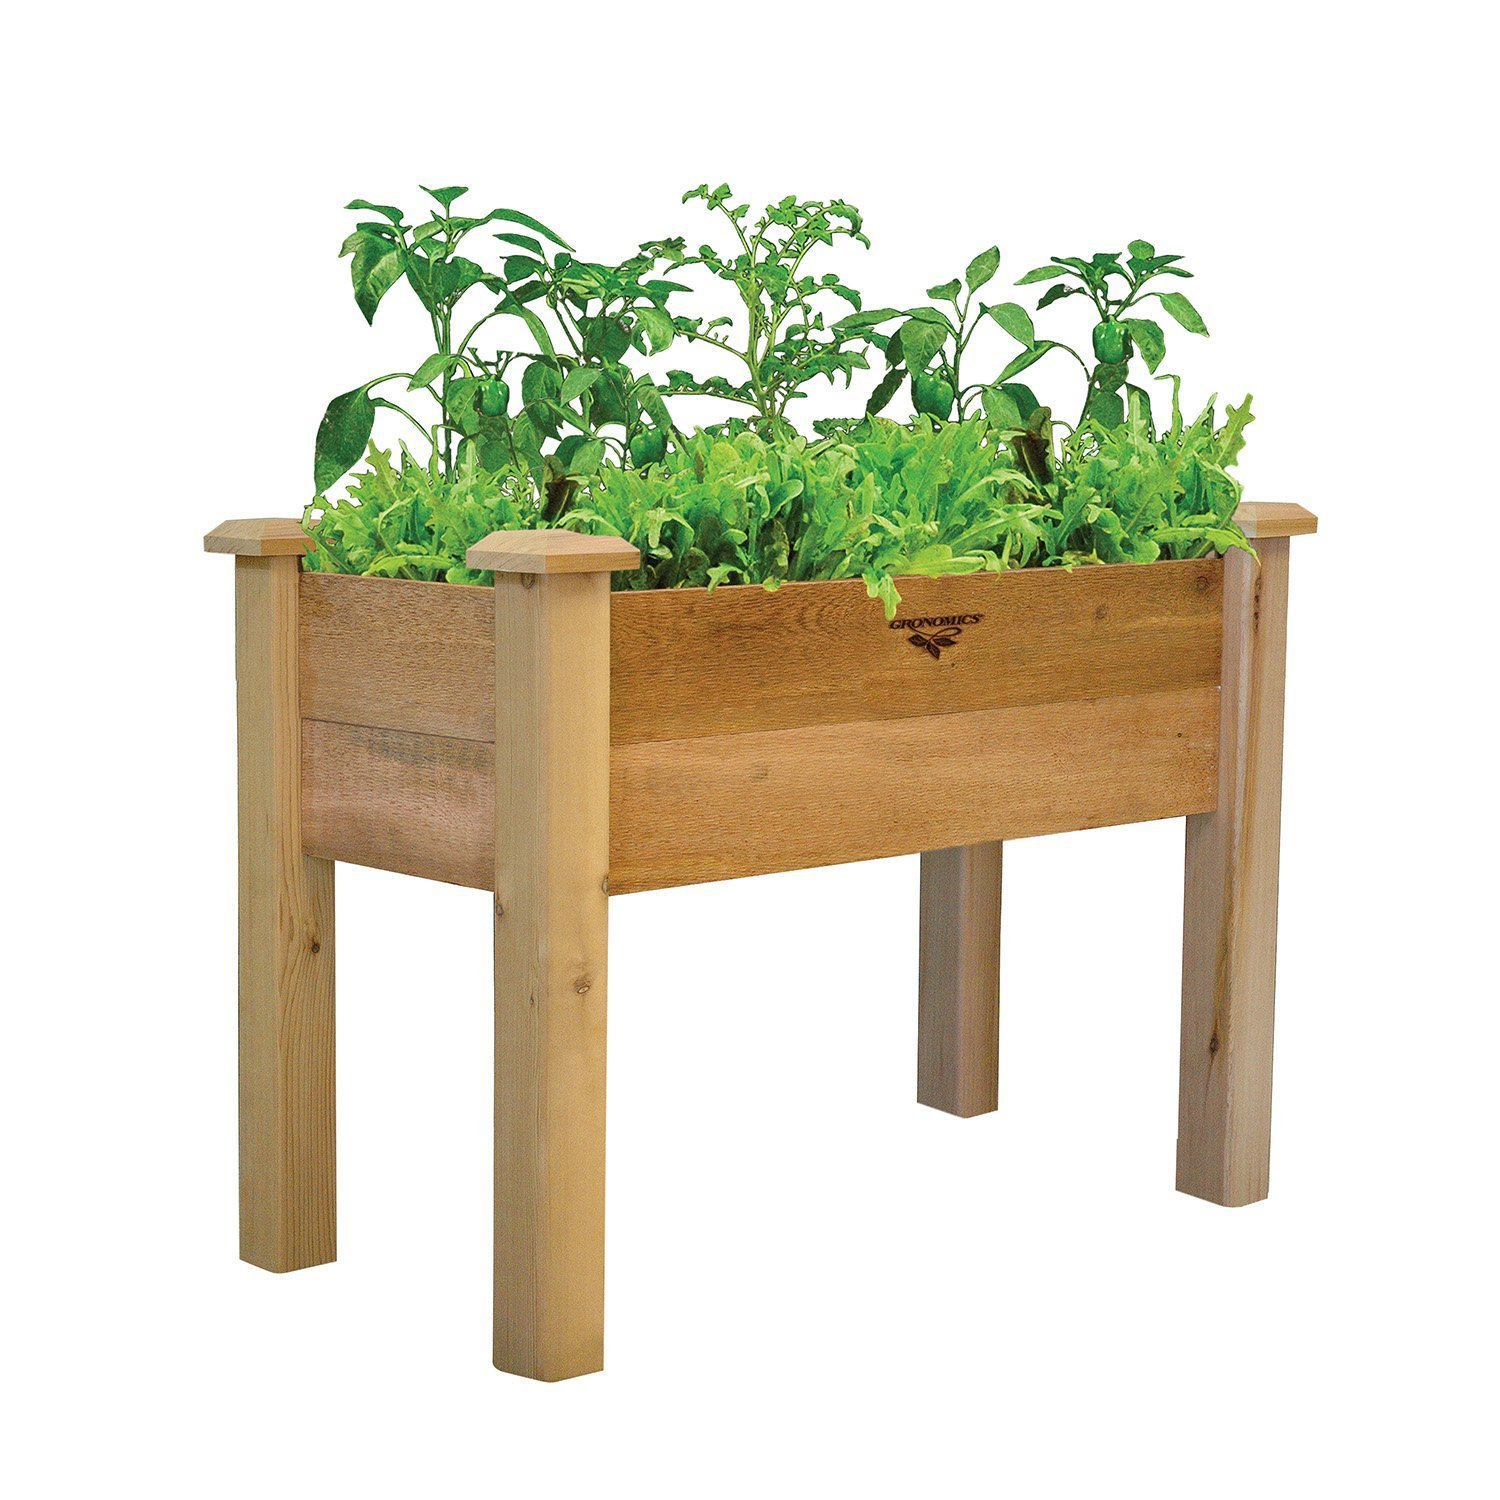 """Gronomics Rustic Elevated Garden Bed, 18 by 34 by 32"""""""